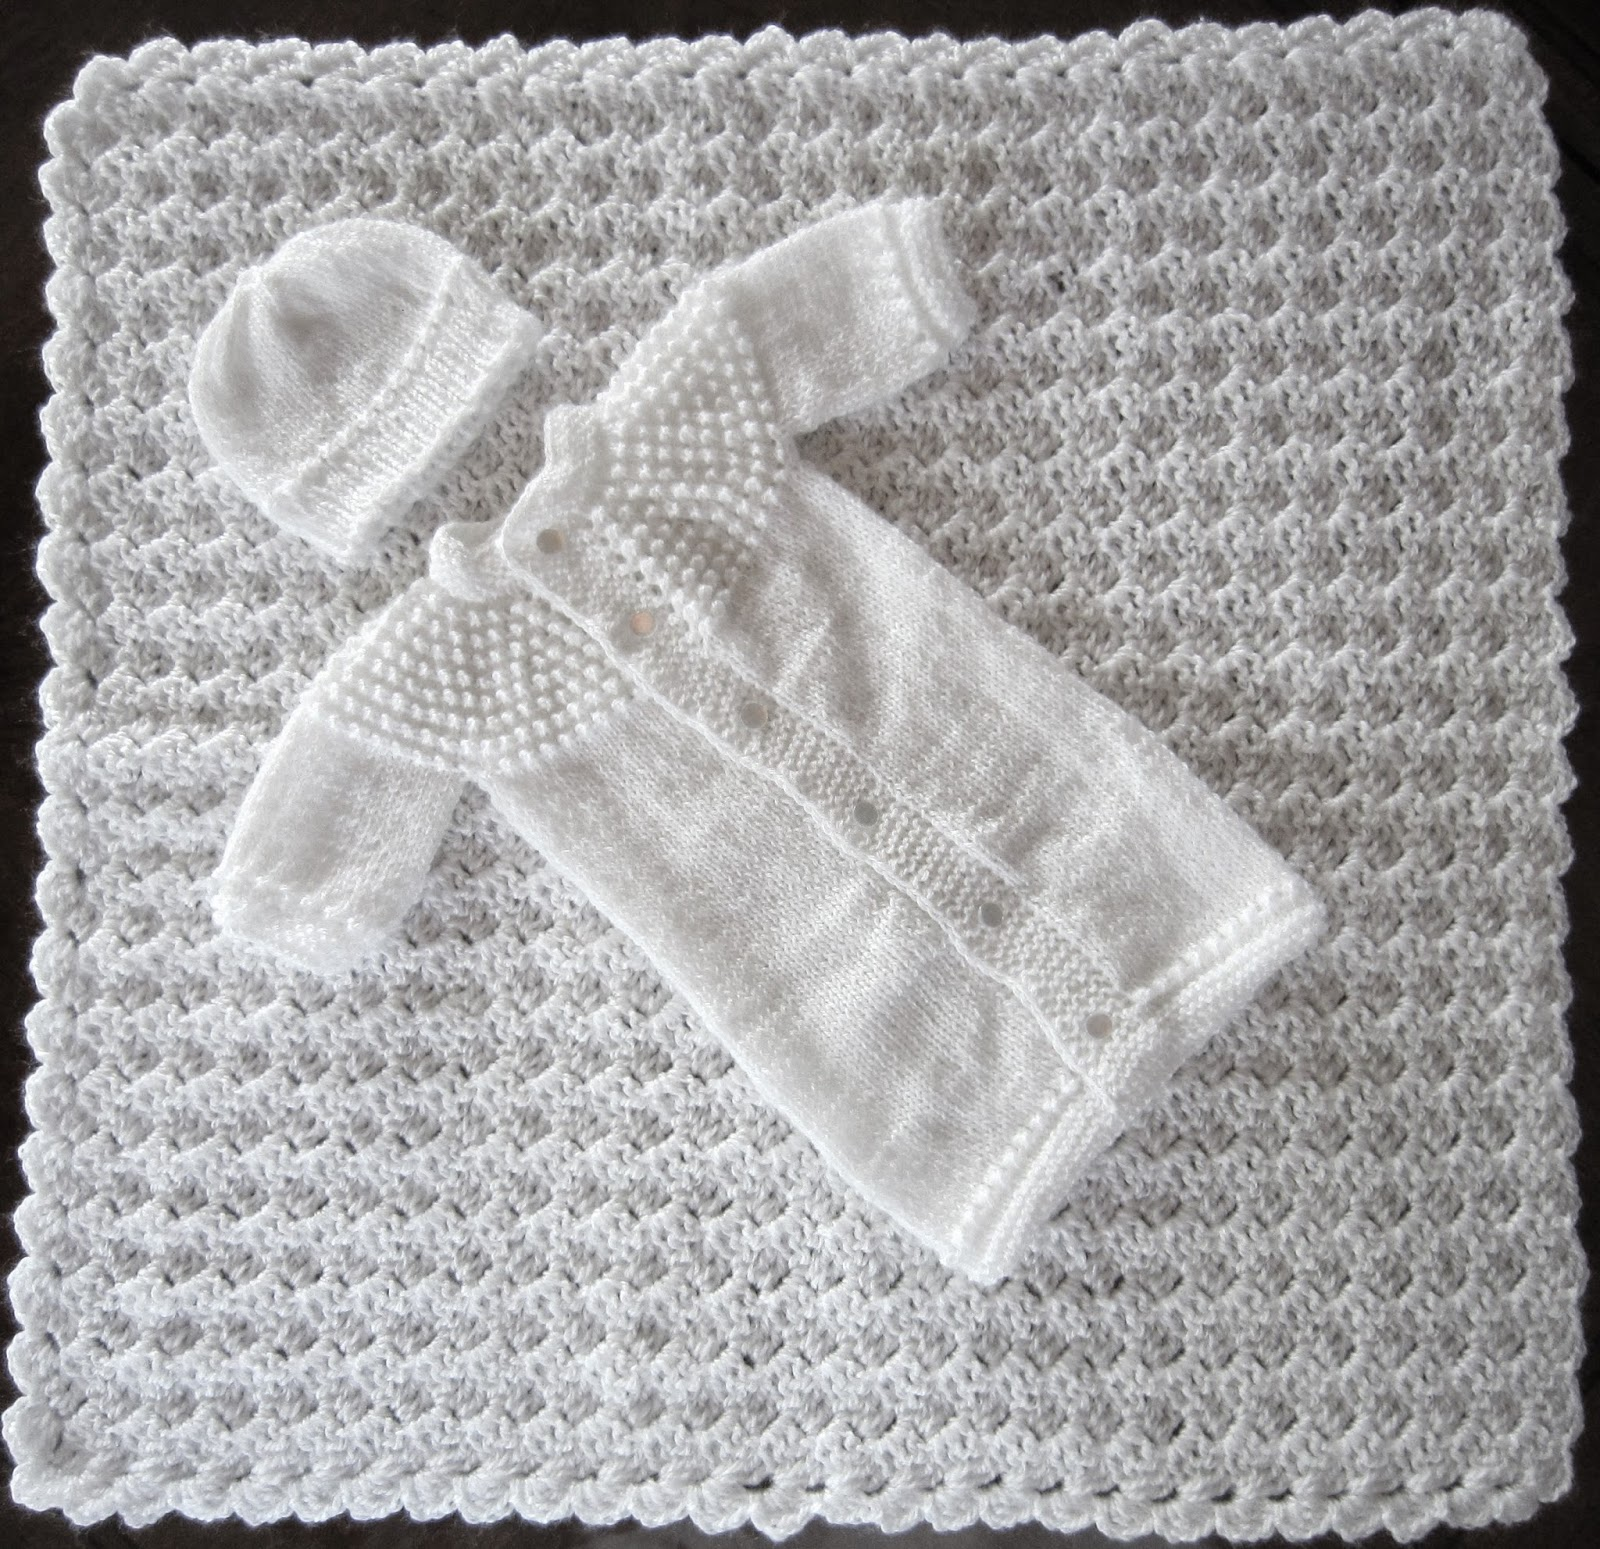 Knitting Pattern Baby Boy Christening : Sea Trail Grandmas: FREE PATTERN CHRISTENING OR BURIAL SET ...